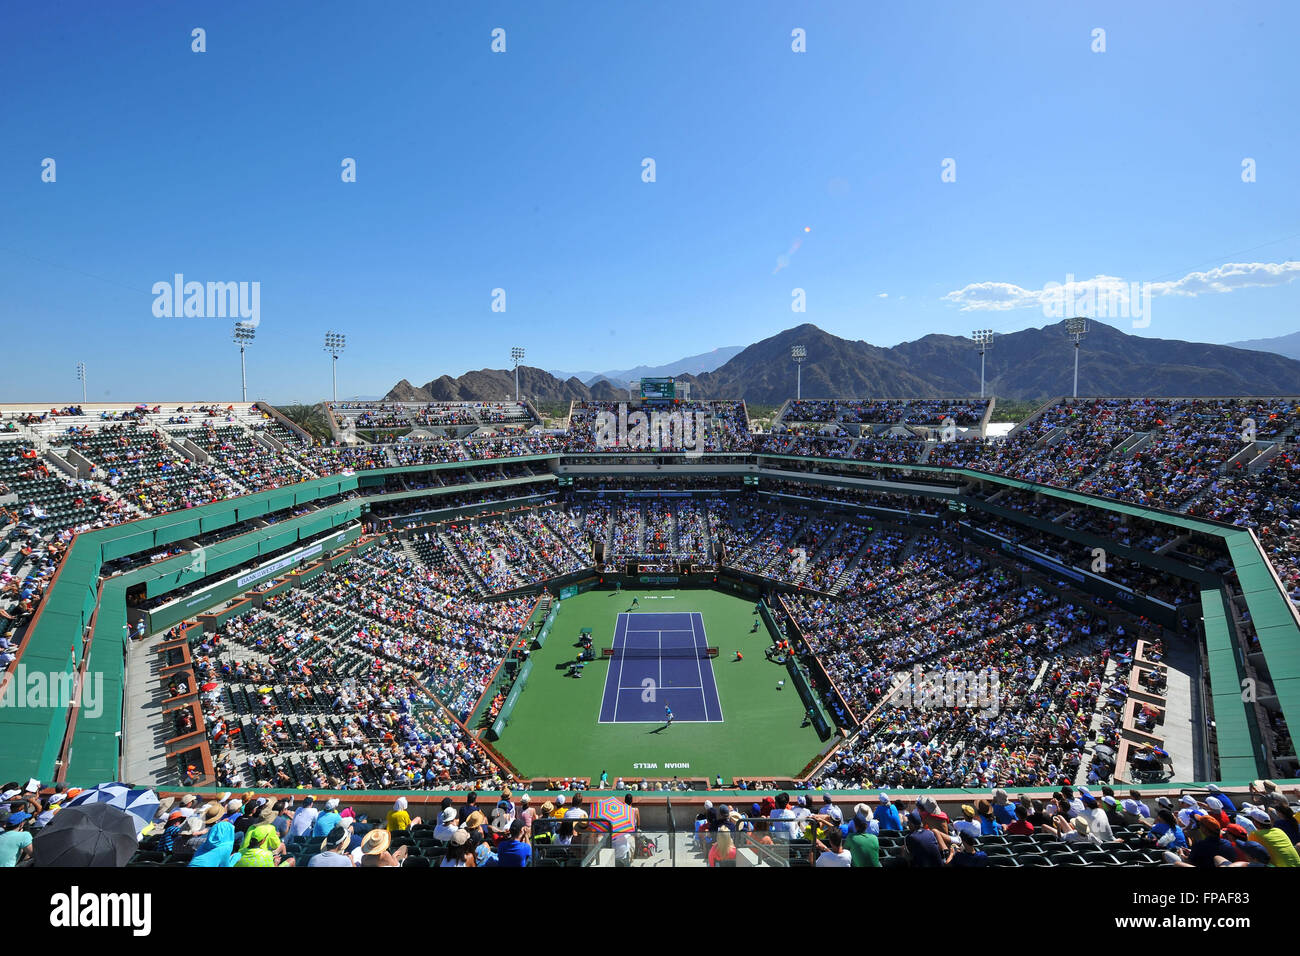 Indian Wells, California, USA. 17th Mar, 2016. BNP Paribas Open Tennis